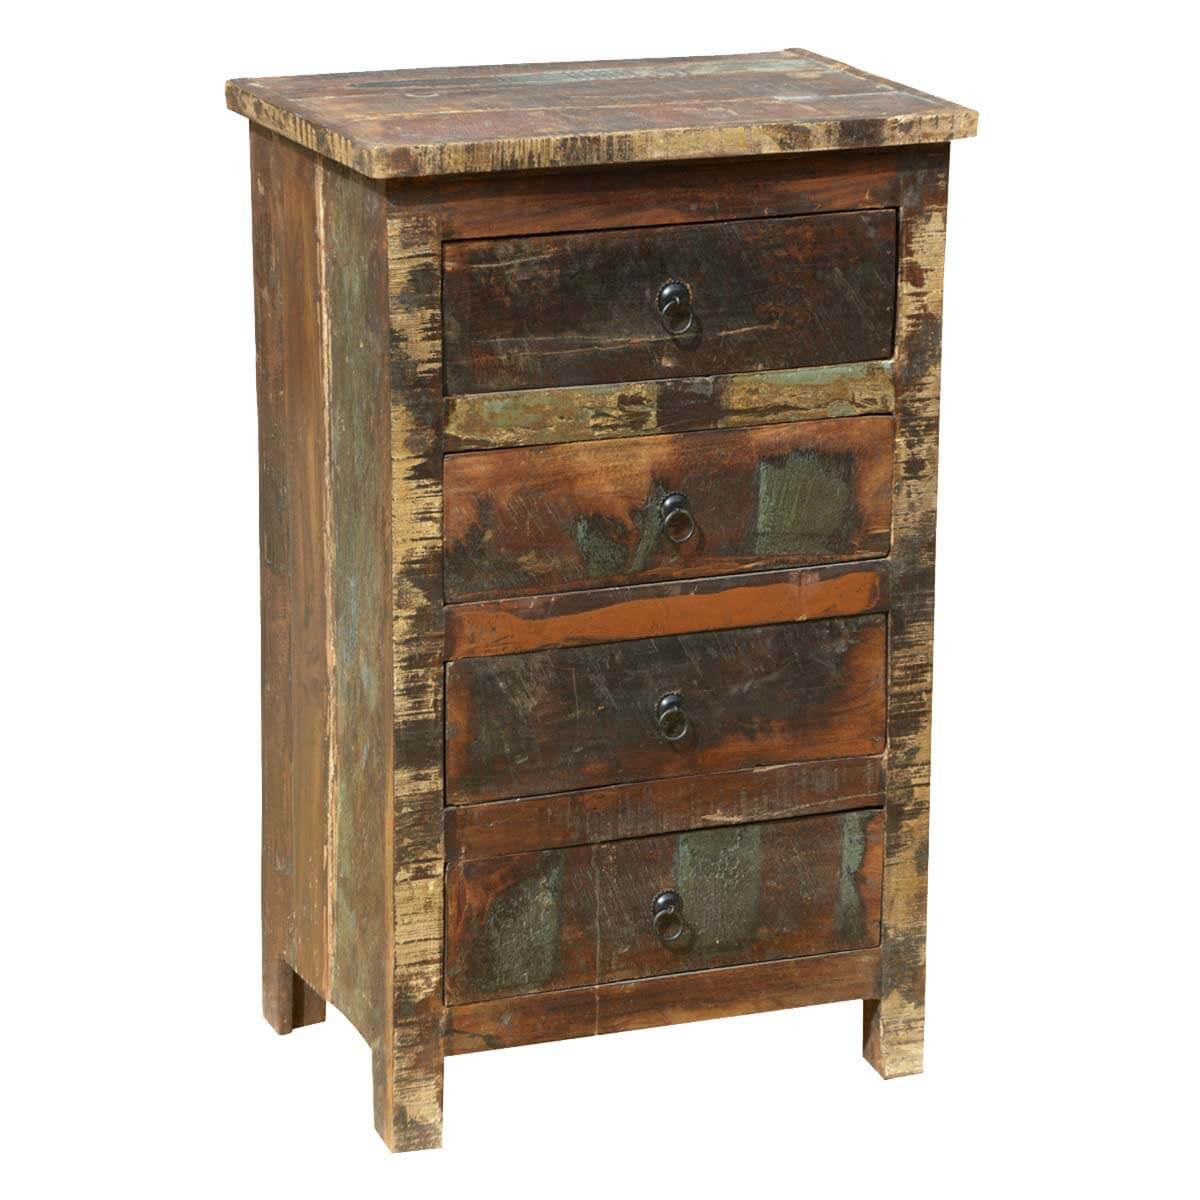 appalachian rustic distressed reclaimed wood 4 drawer